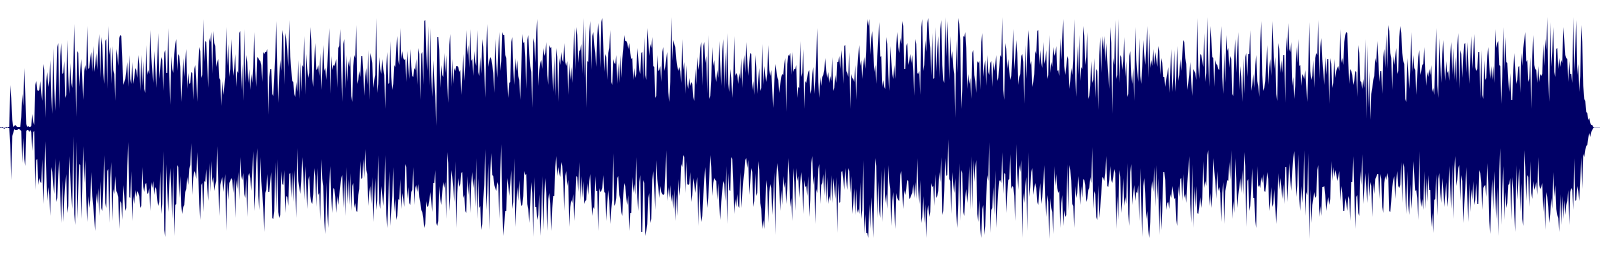 waveform of track #128850